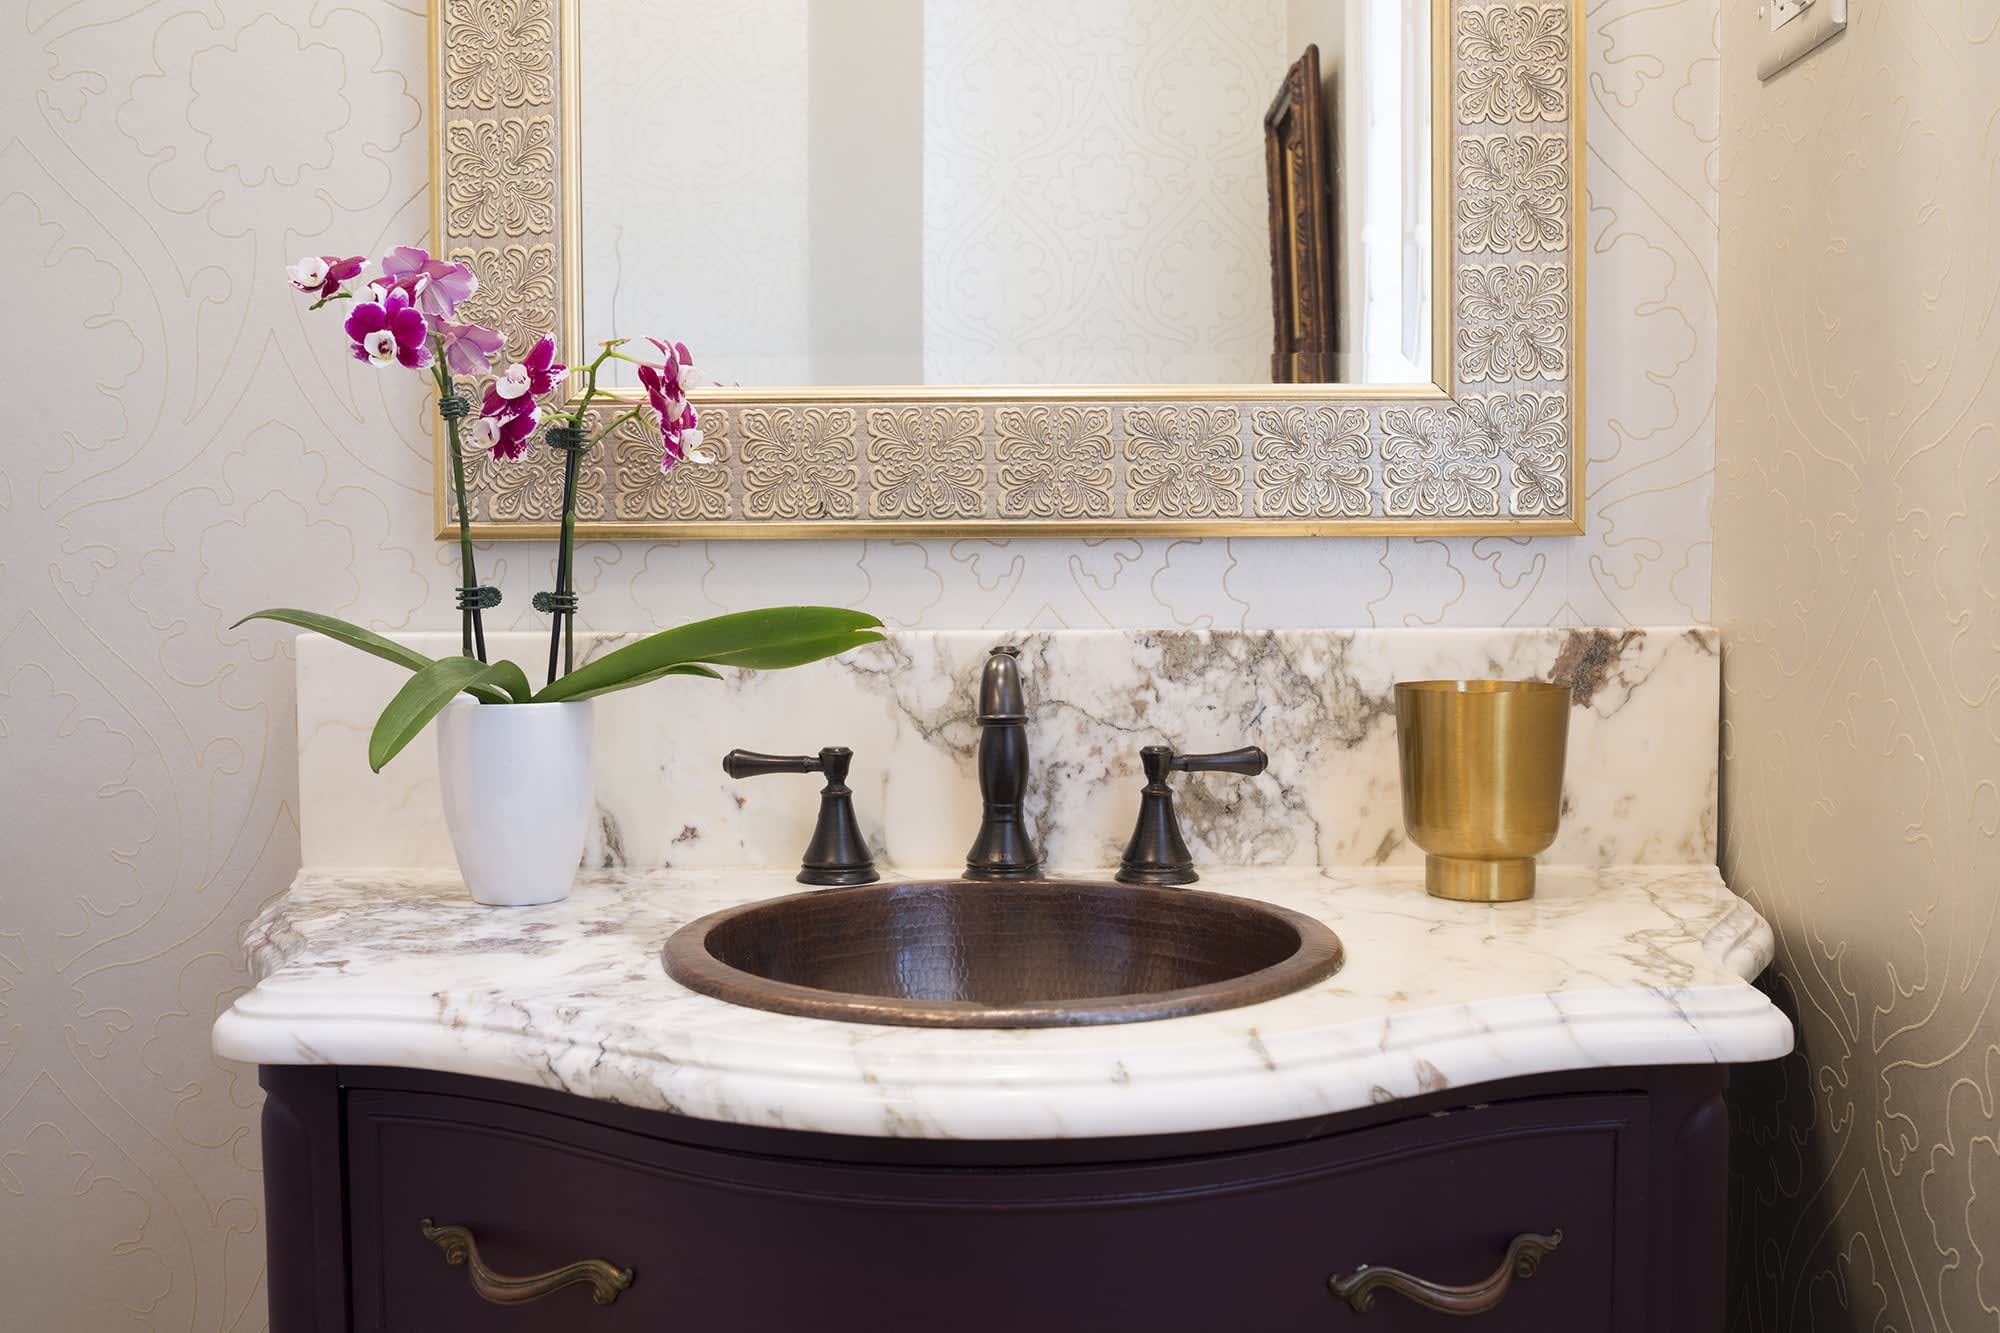 bold choices like a bronze sink are perfect for powder rooms